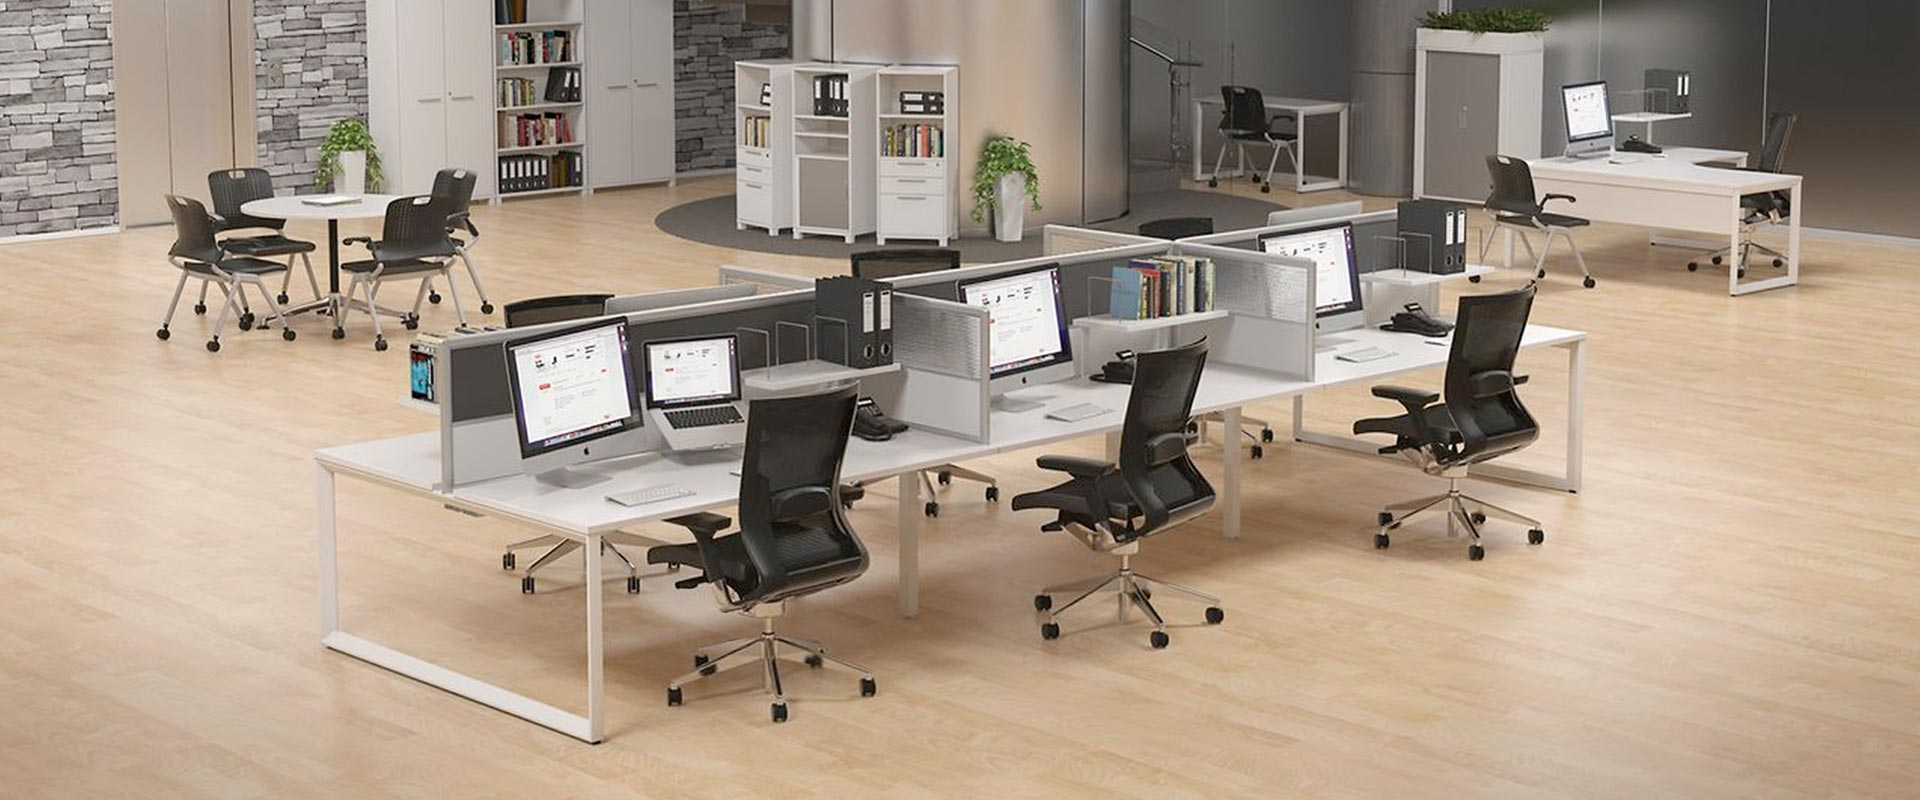 Buy Office Furniture In Lagos Nigeria Hitech Design Nilkamal Recardo Office Table Buy Nilkamal